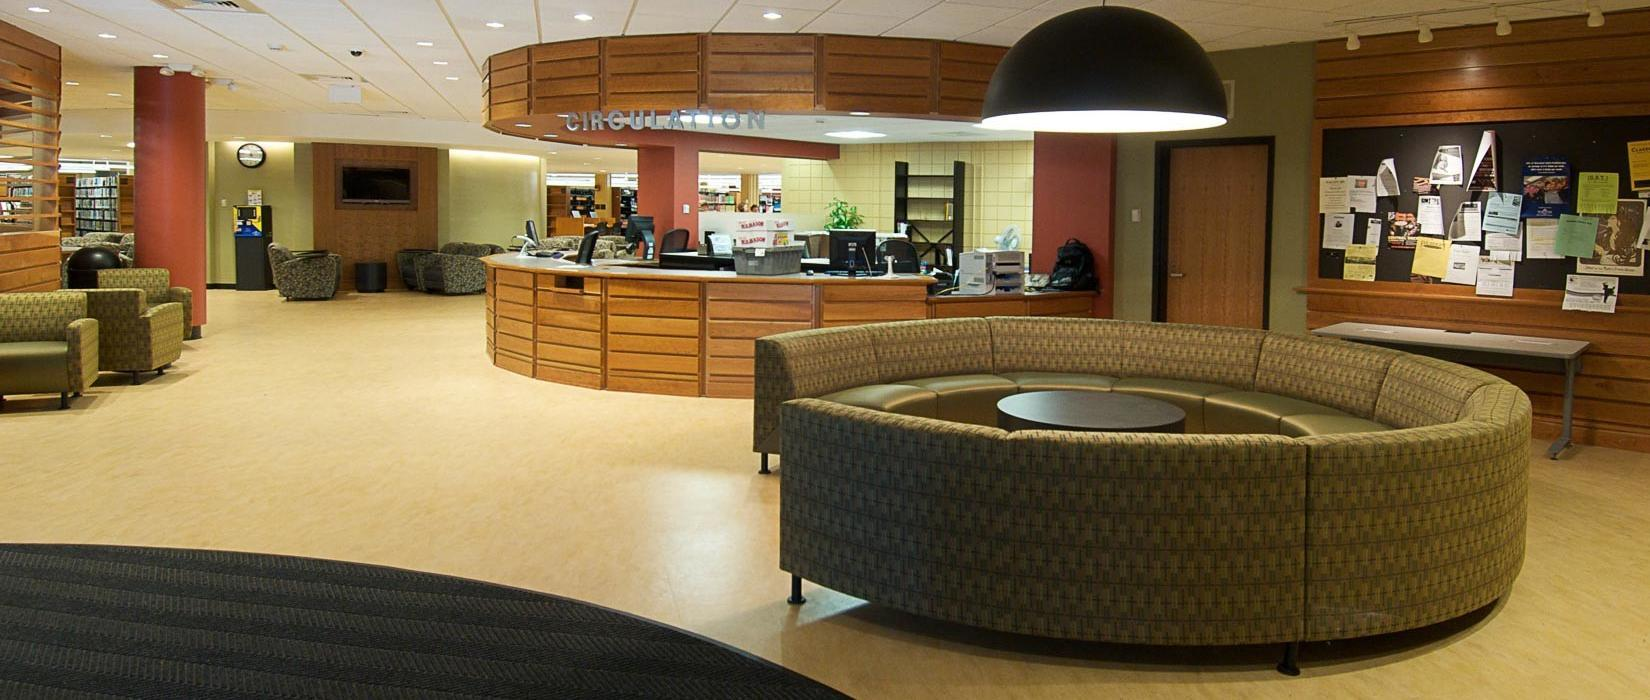 Worcester State University, Learning Resource Center, Lobby